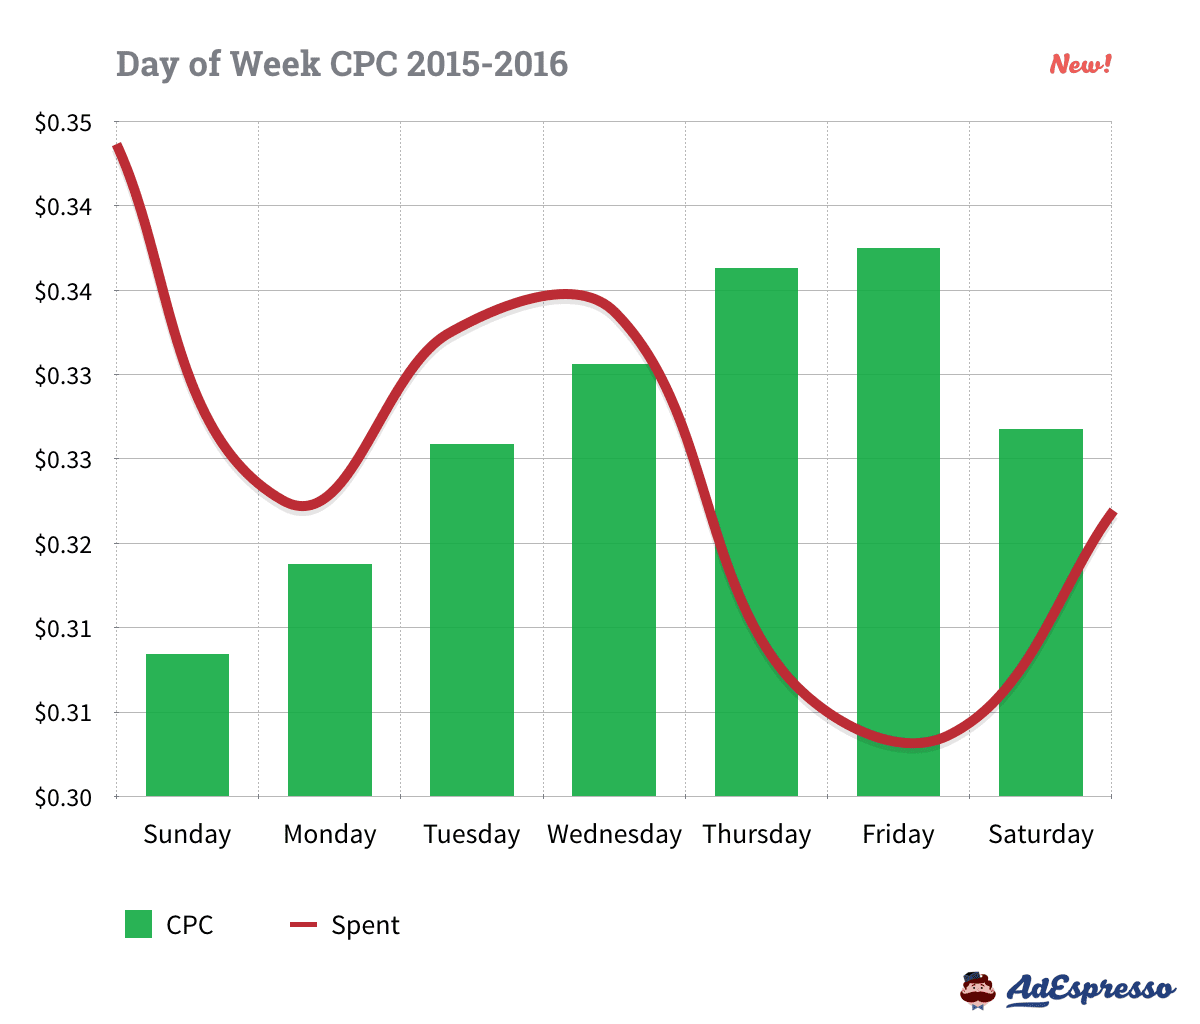 Facebook Advertising Cost by Day of the Week